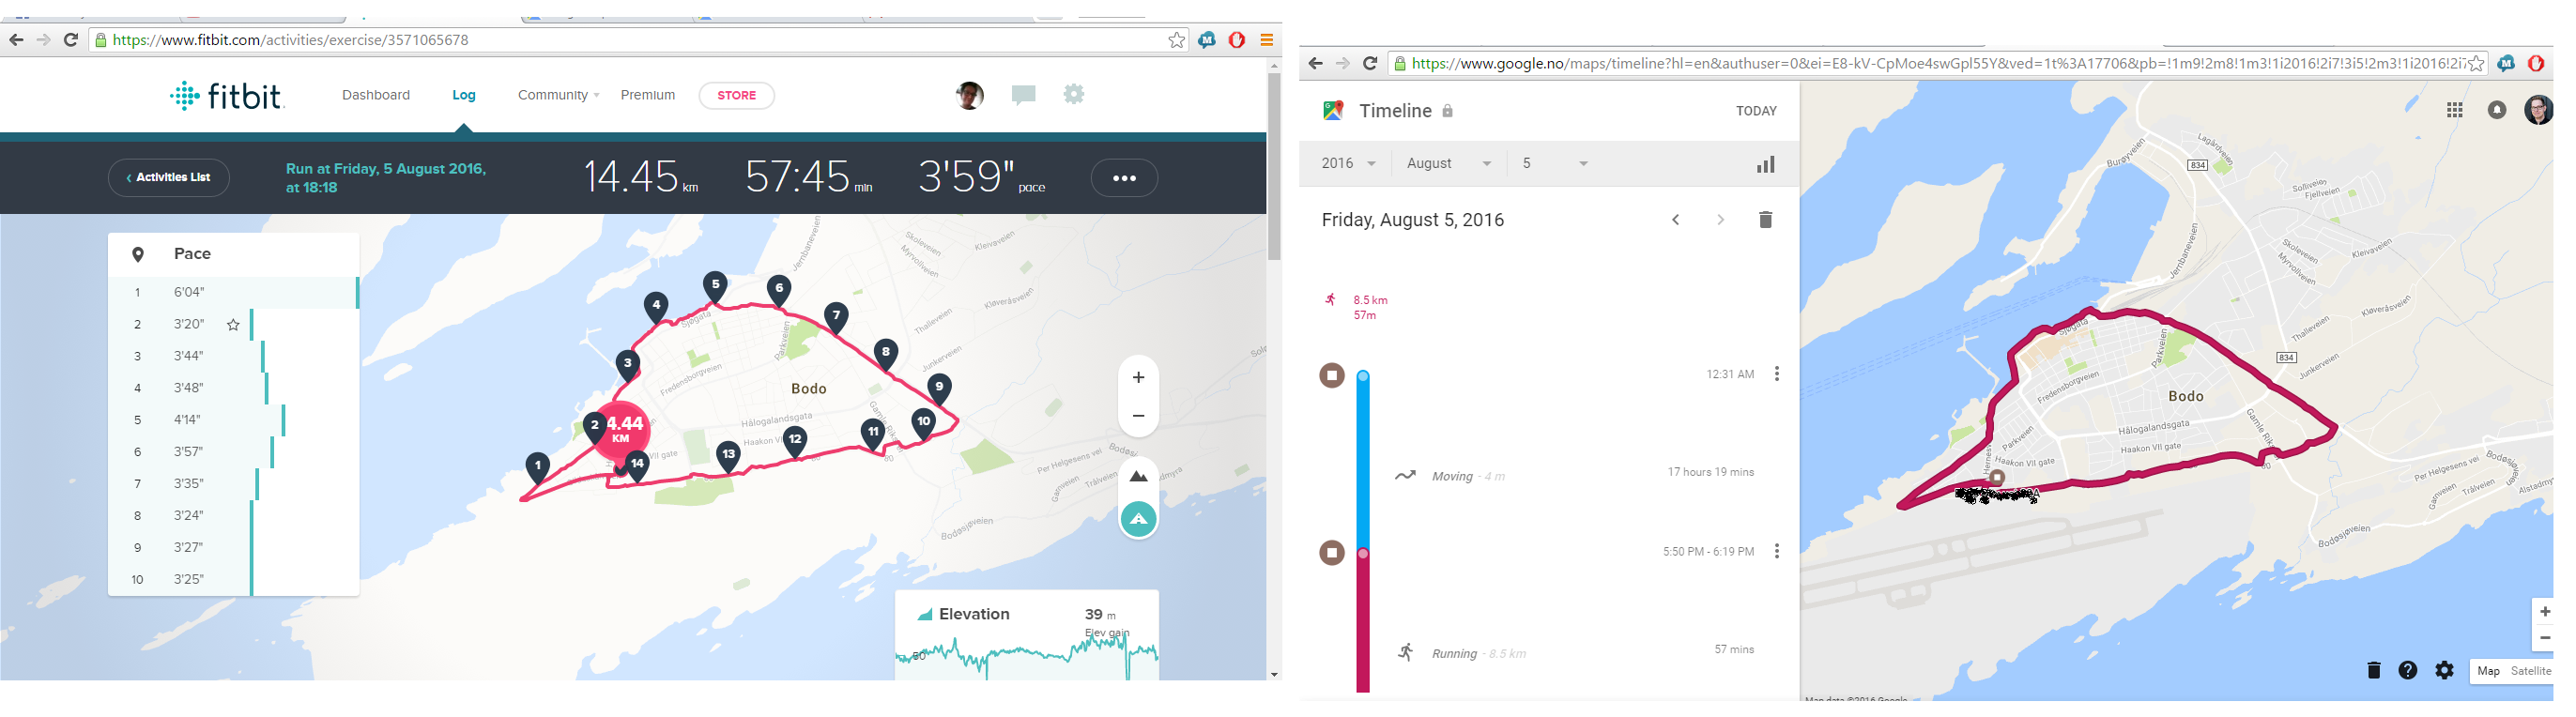 fitbit map of run how to